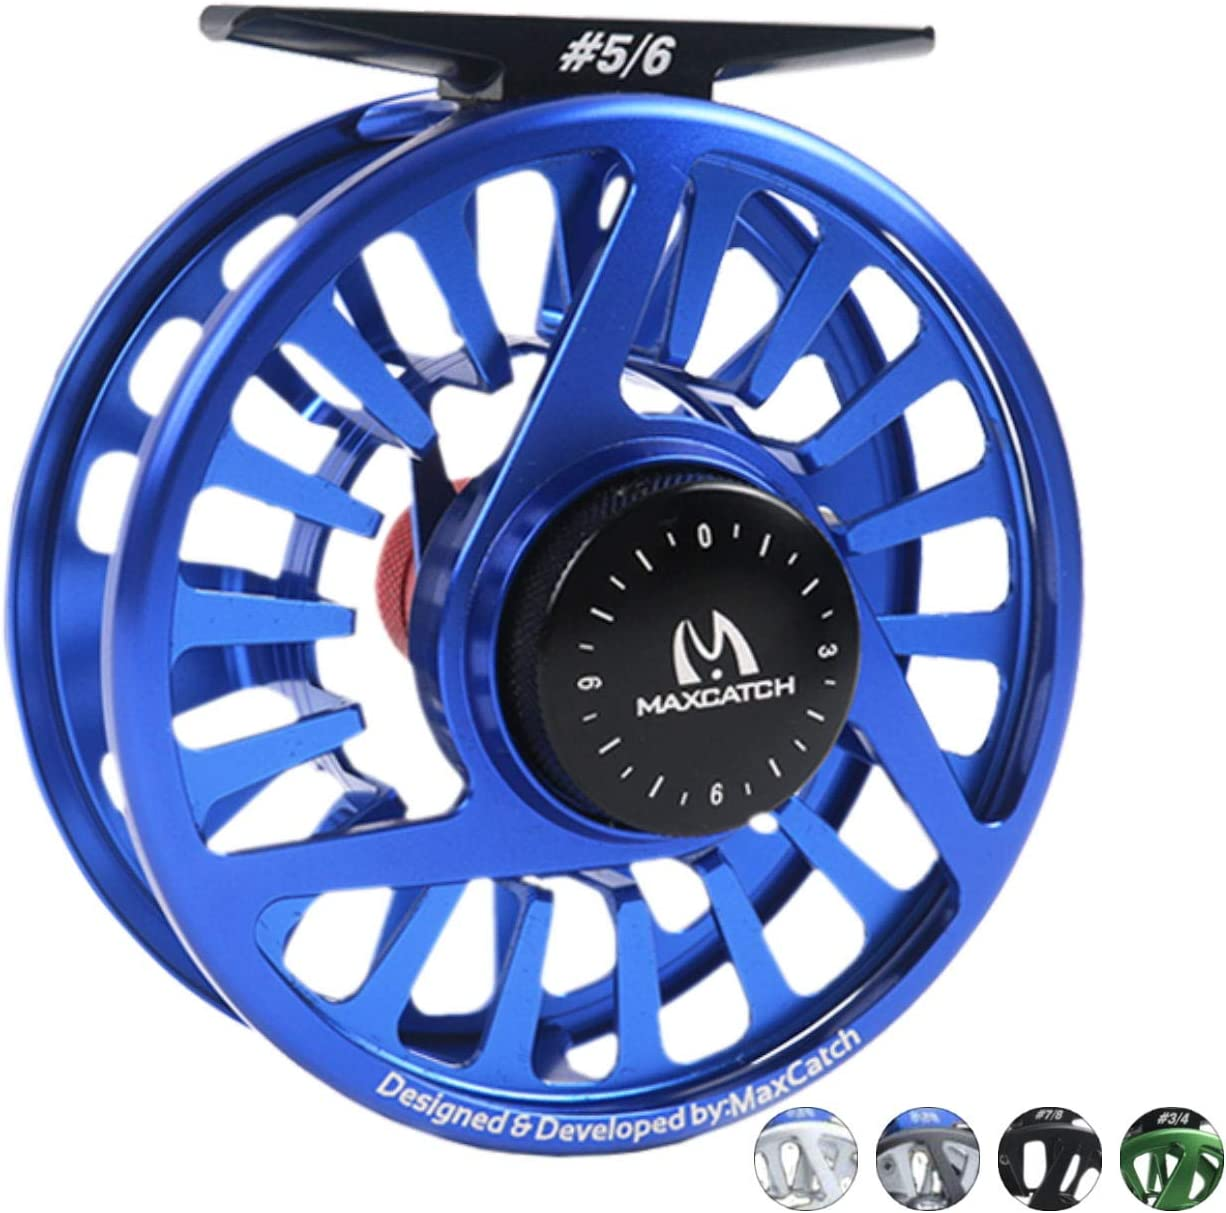 M MAXIMUMCATCH Maxcatch Fly Fishing Reel with CNC-machined Aluminum Body Avid Series Best Value – 1 3, 3 4, 5 6, 7 8, 9 10 Weights Black, Green, Blue, Silver, Black Silver